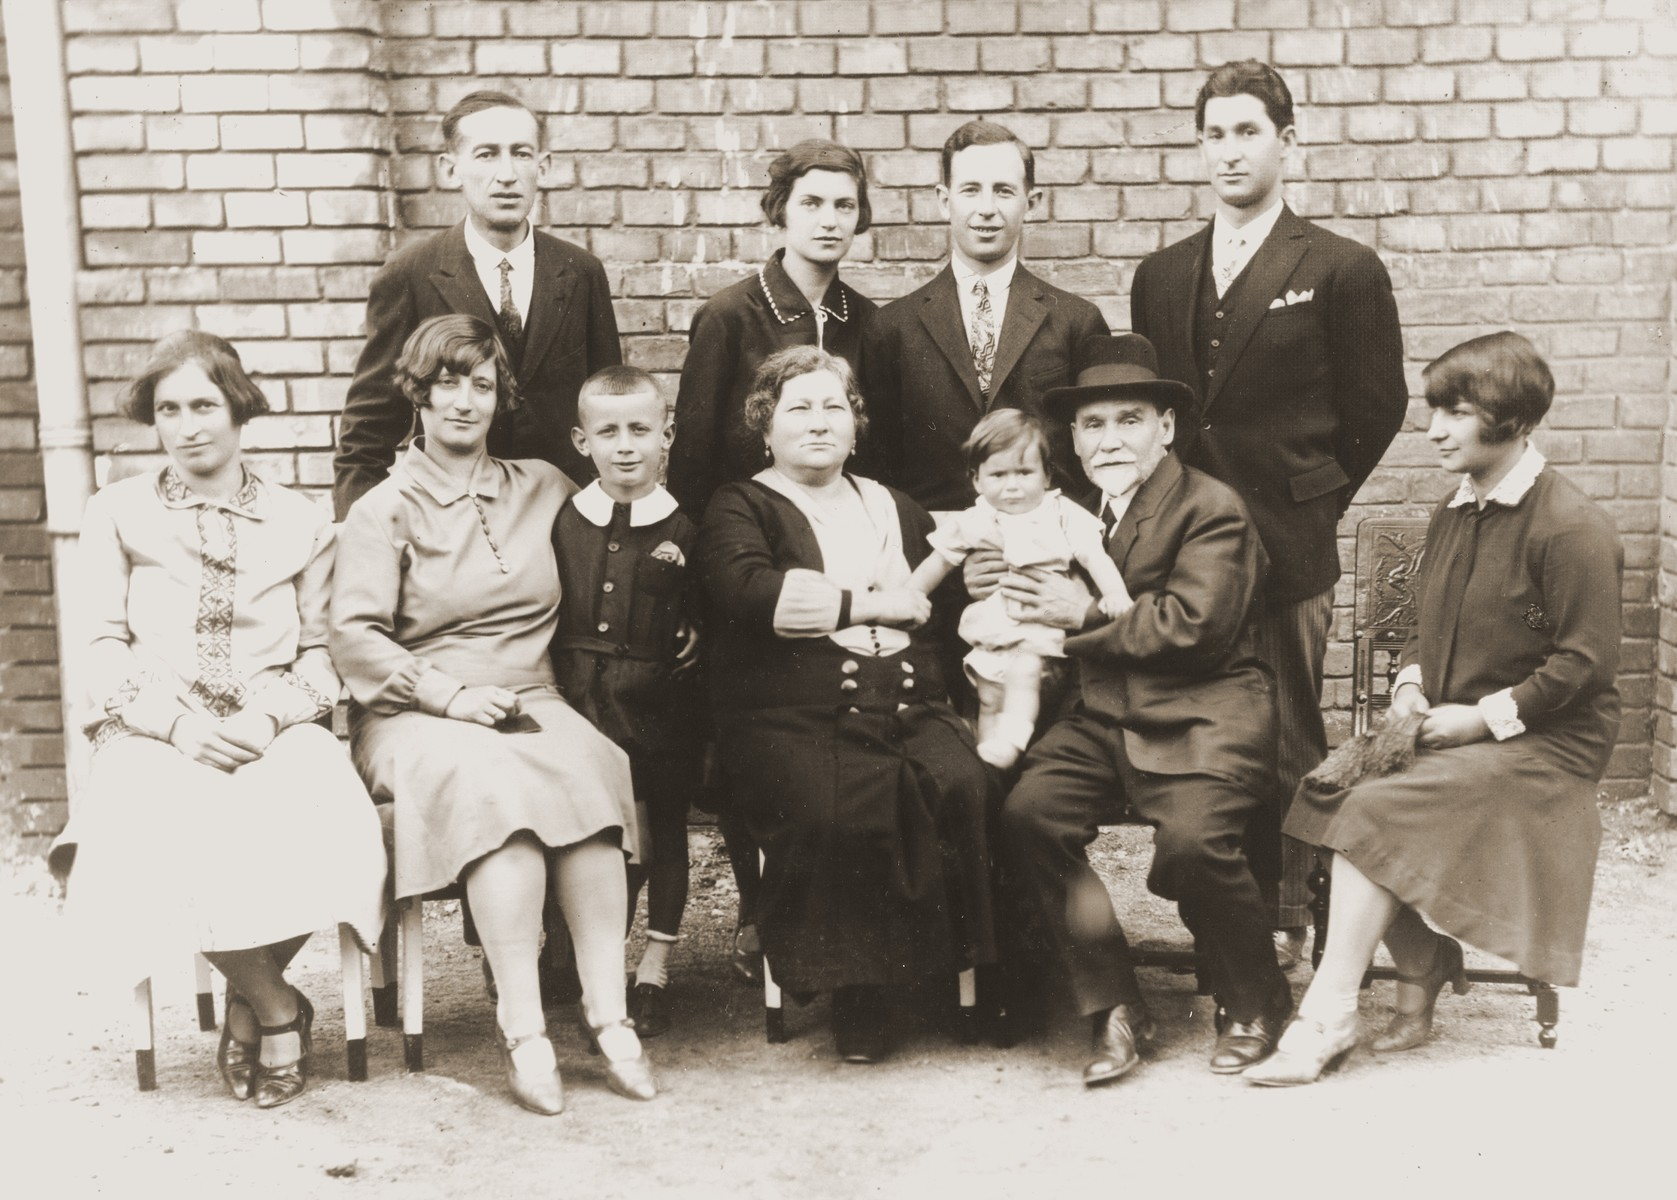 Portrait of the extended Kupfermann family in Budapest.  Pictured in the front row from left to right are Rezinka and Piri Kupfermann, Gyury Friedman, grandmother Kupfermann, Aurel Kupfermann, Osias Kupferman, and Boriska Kupfermann.  Standing from left to right are: Arpad Friedman, Blanka and Beno Kupfermann, and Andres Kupfermann.  Osias Kupferman was the cantor of a synagogue in Buda.  Arpad and Piri (Kupfermann) Friedman and their son Gyury later emigrated to Uruguay.  Andres Kupferman was an opera singer, whose stage name was Andor Koves.  He was also an athlete who had won medals at the 1928 Olympics.  He also emigrated to Uruguay.